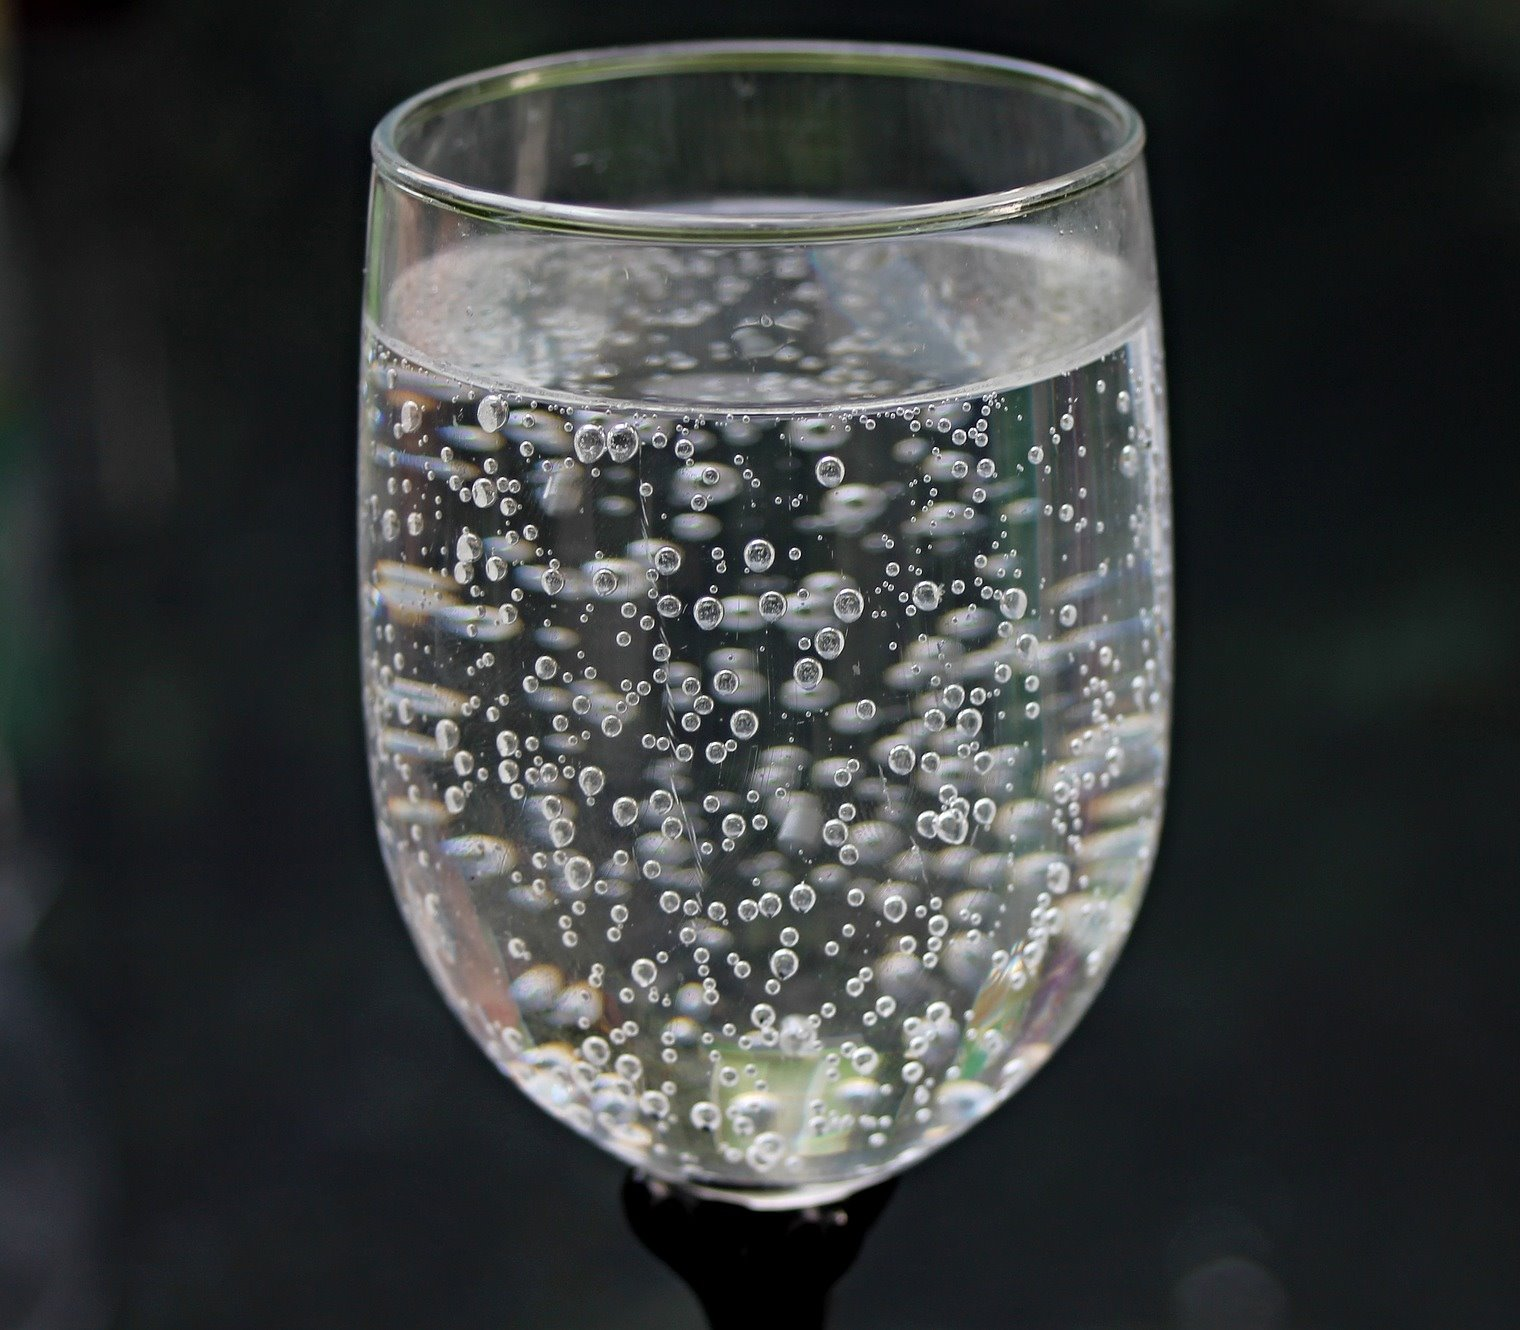 Sparkling Water - Good or Bad?